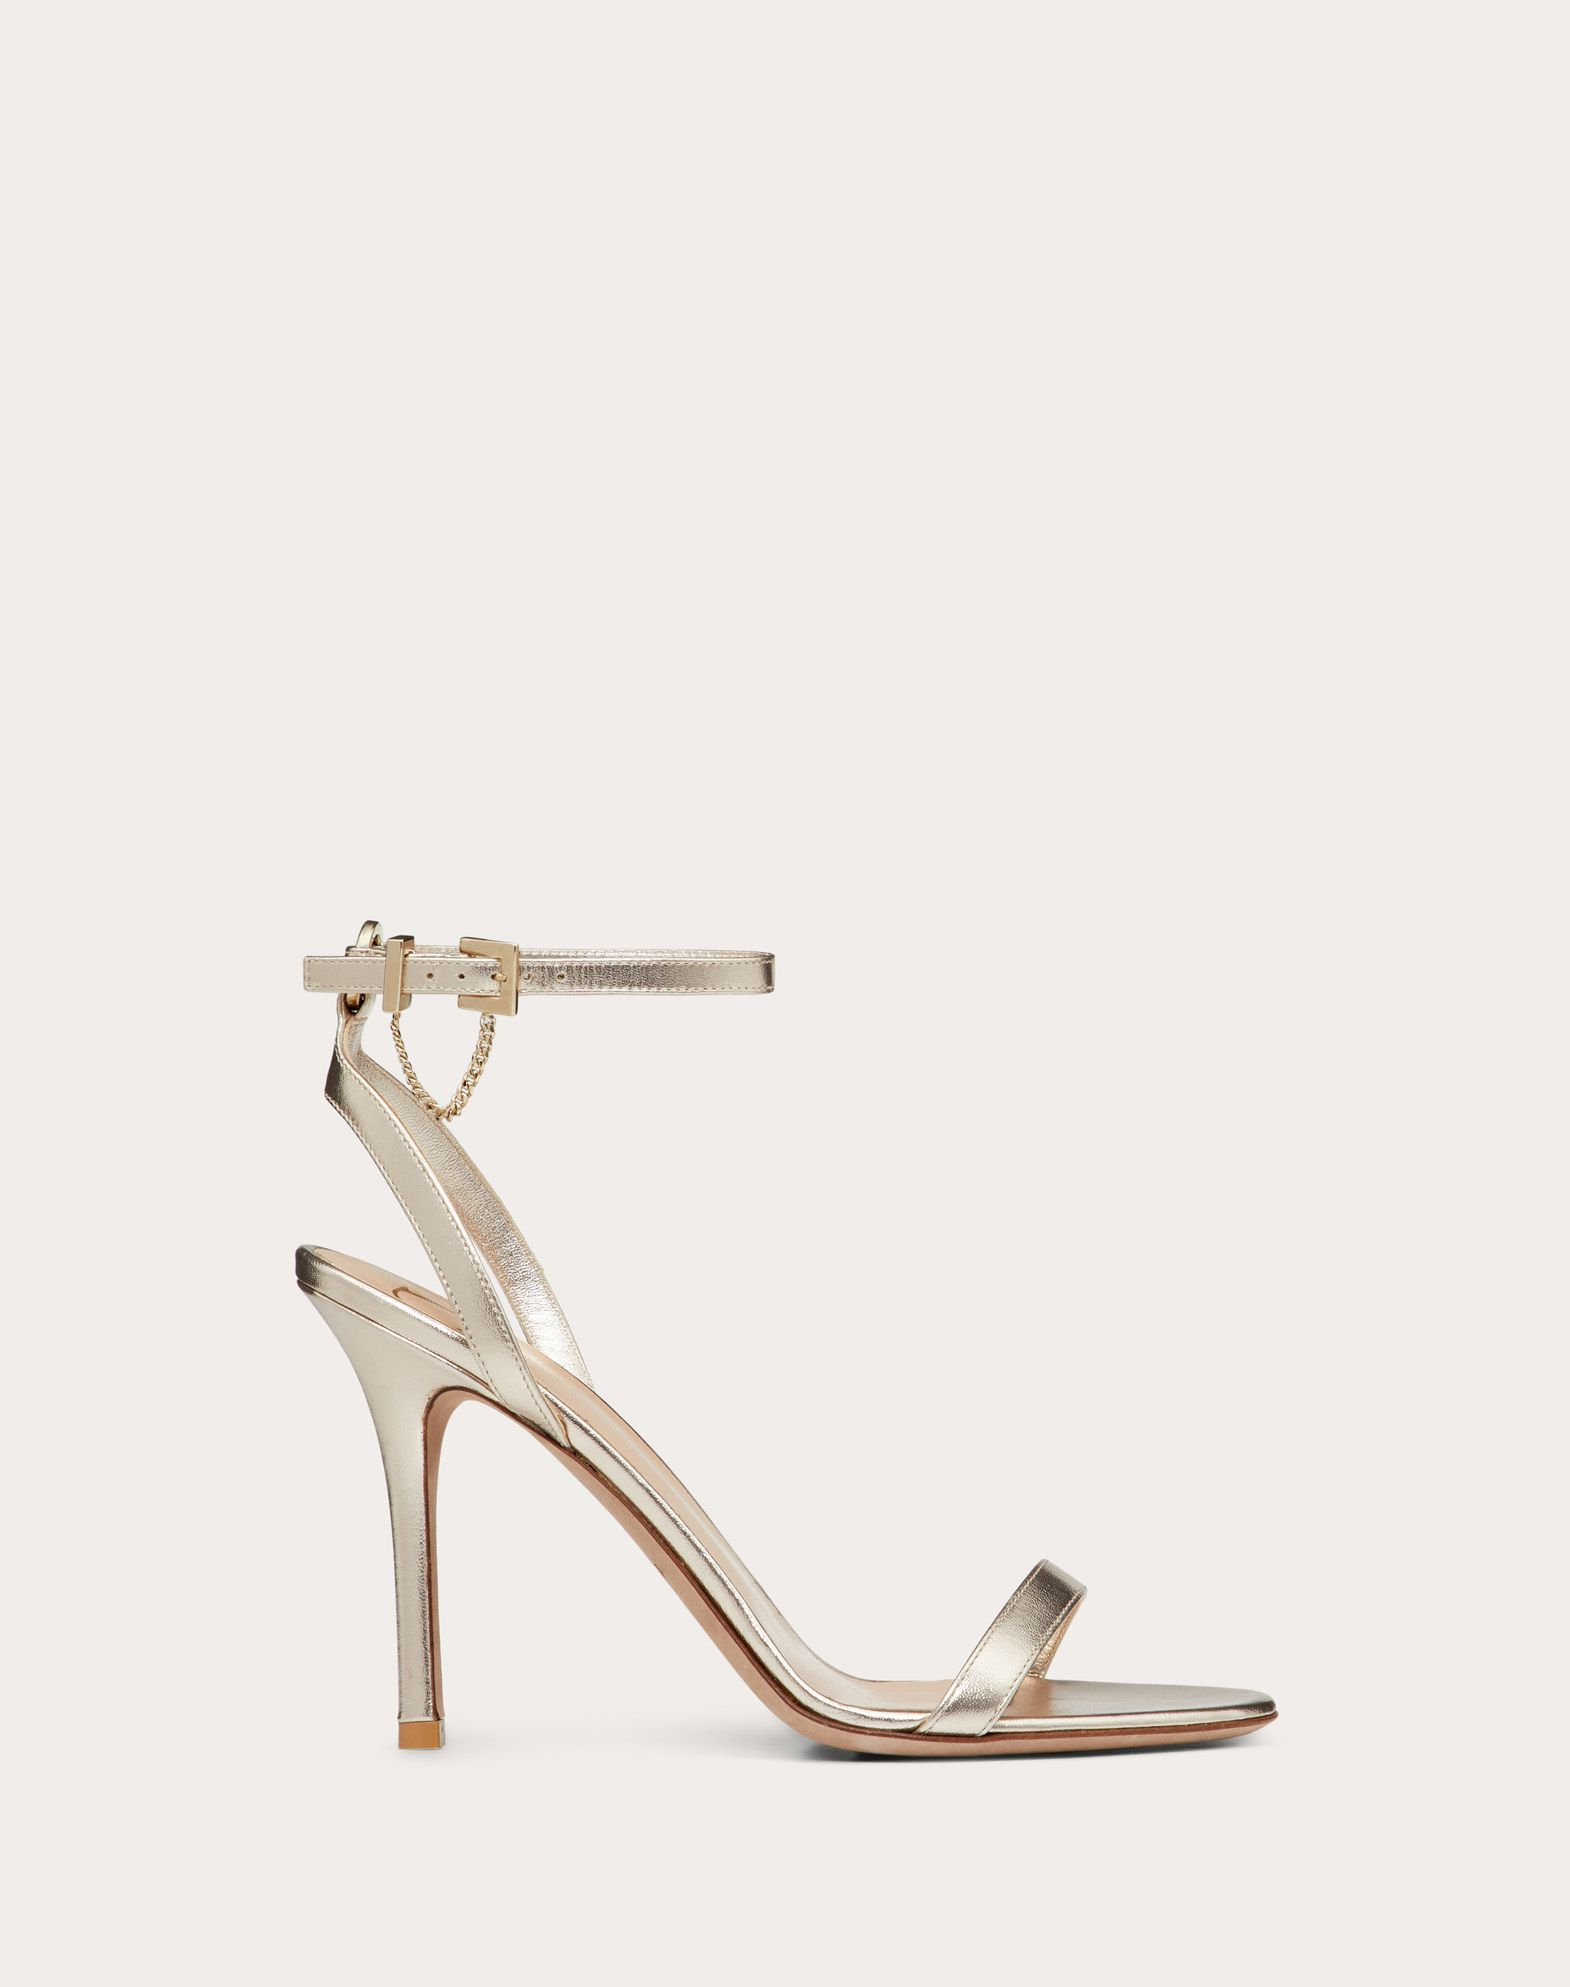 Patent Nappa Leather Sandal with Chain Detail 100 mm